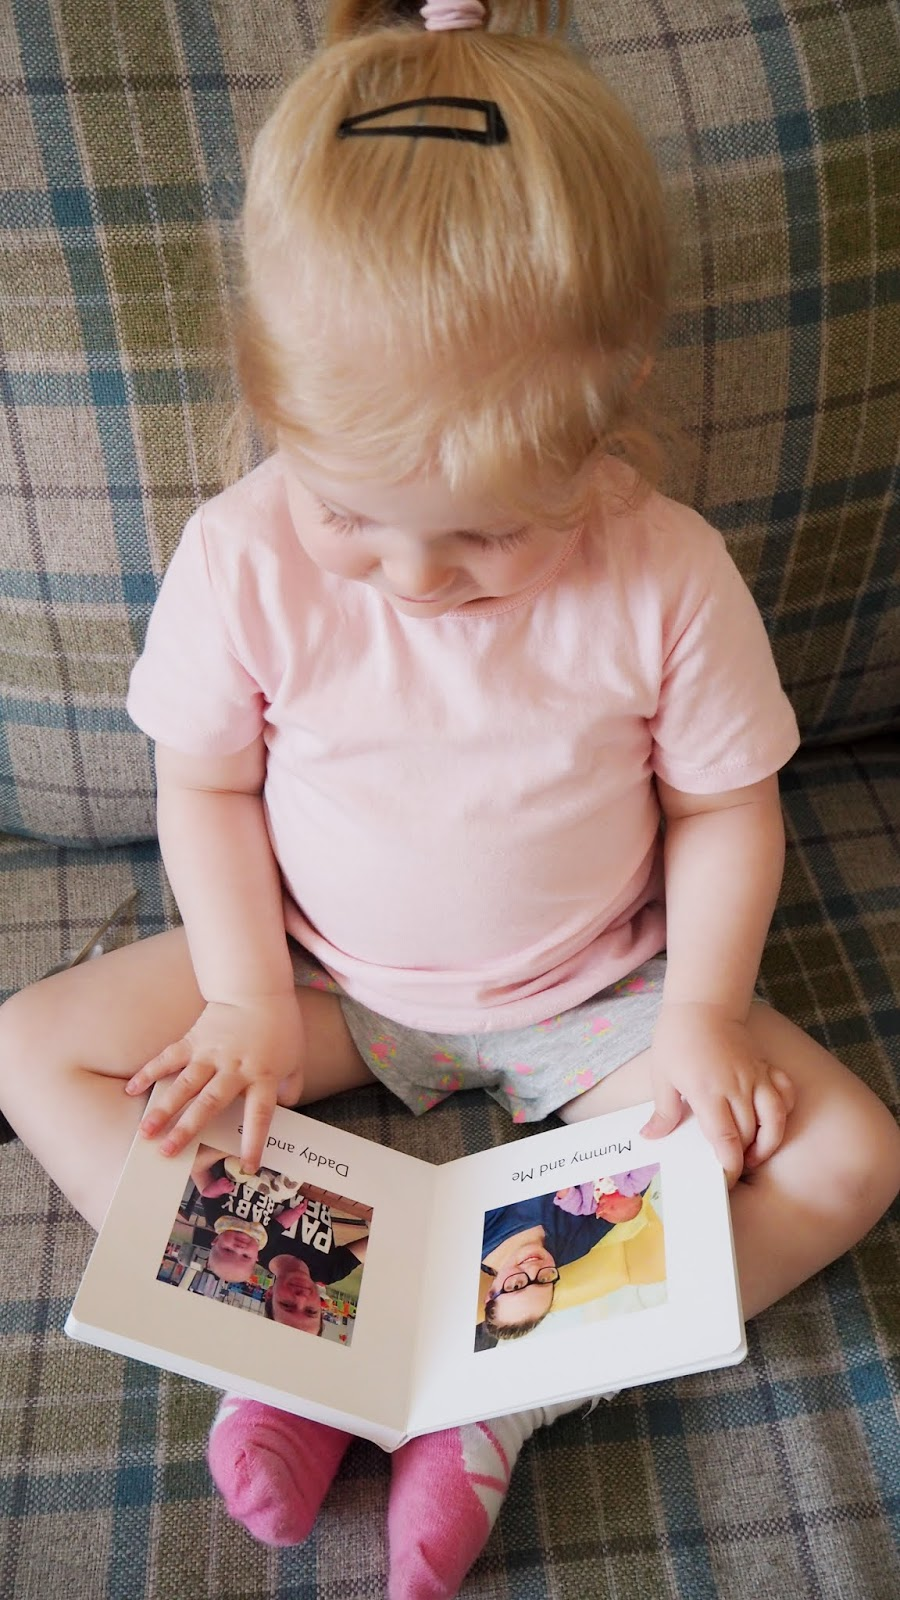 Elise looking down at her photo book and pointing to a picture of her and her daddy